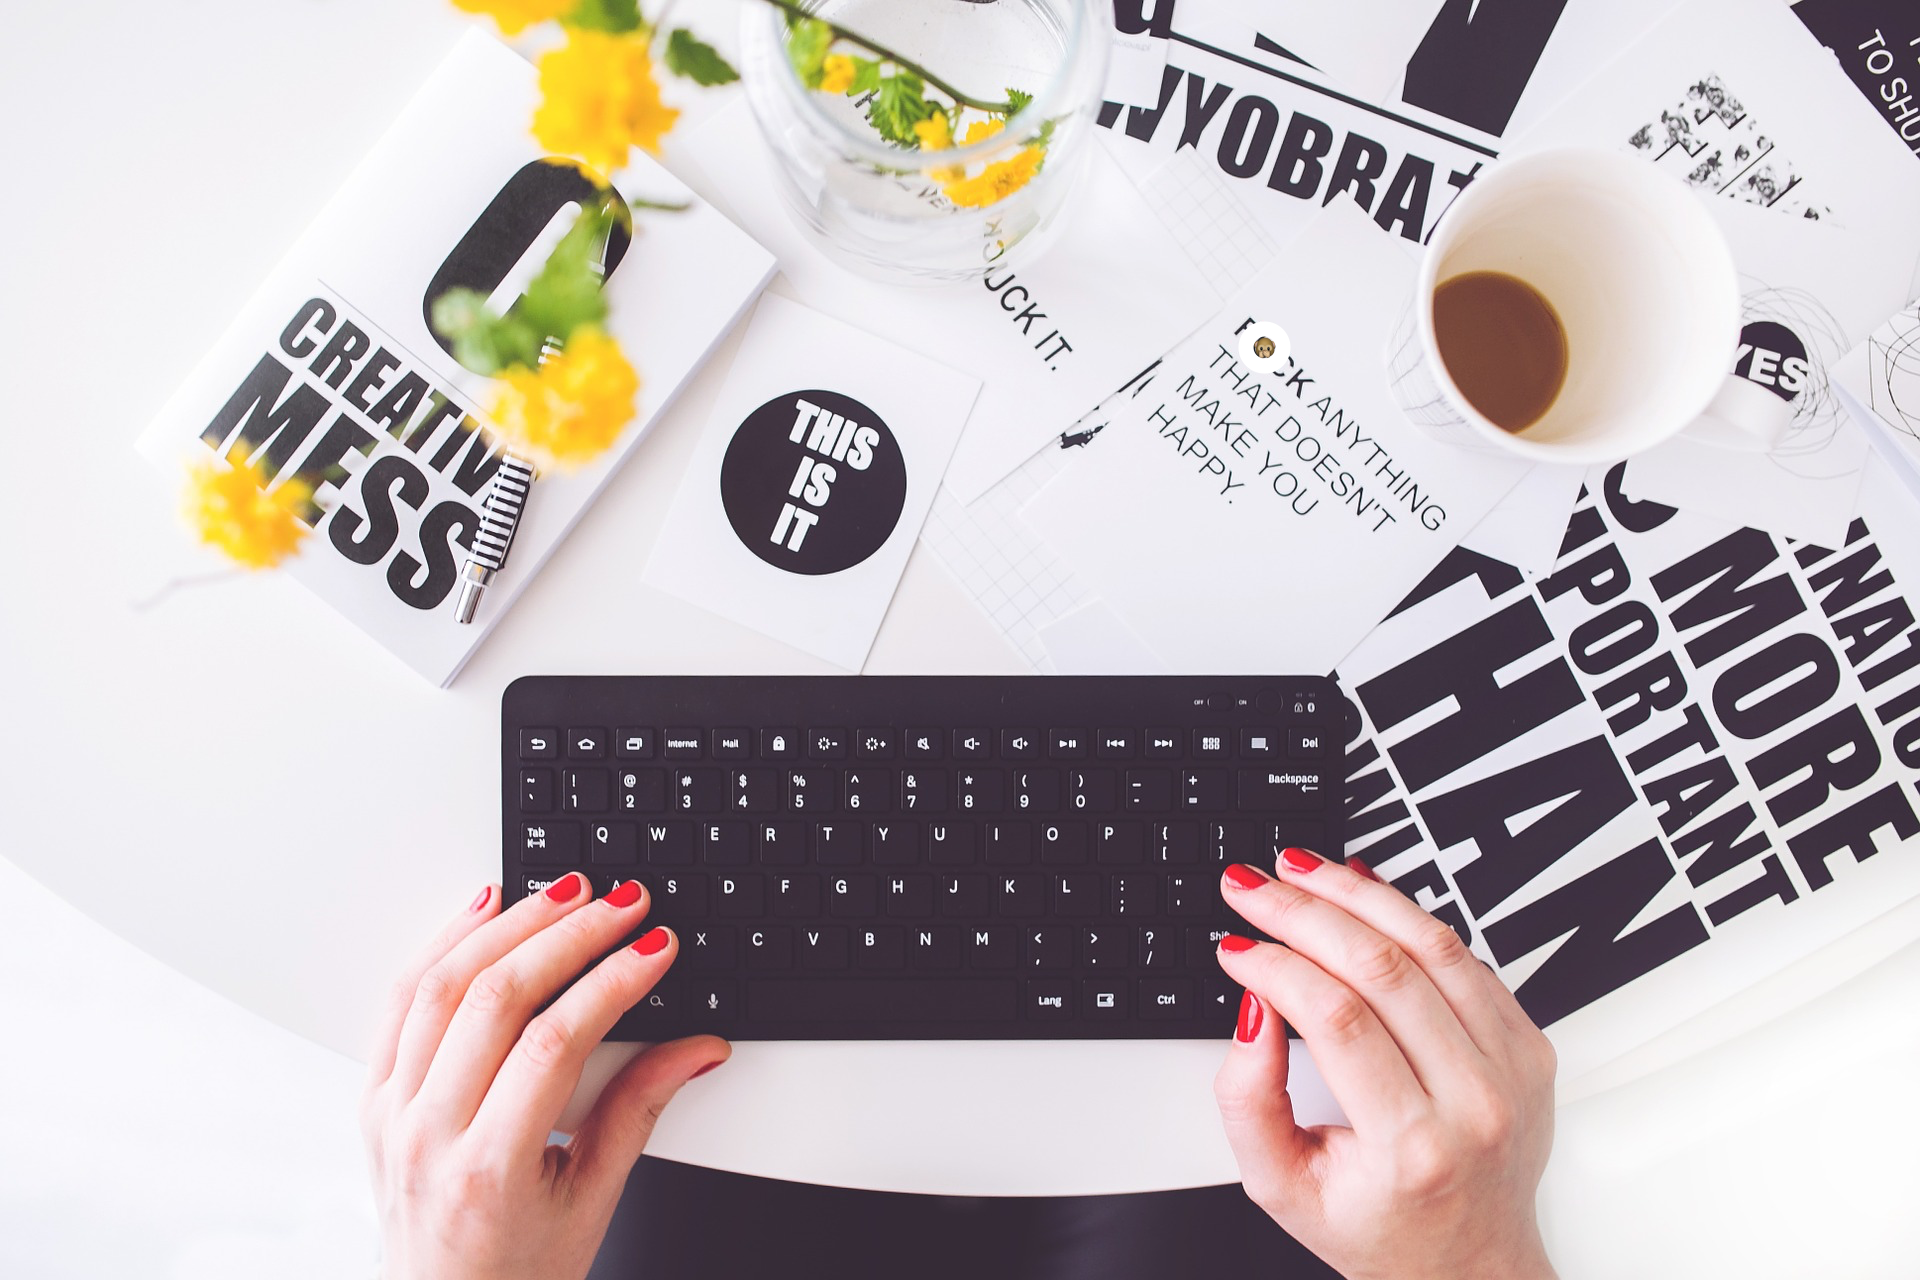 What service do you like best for writing blogs?